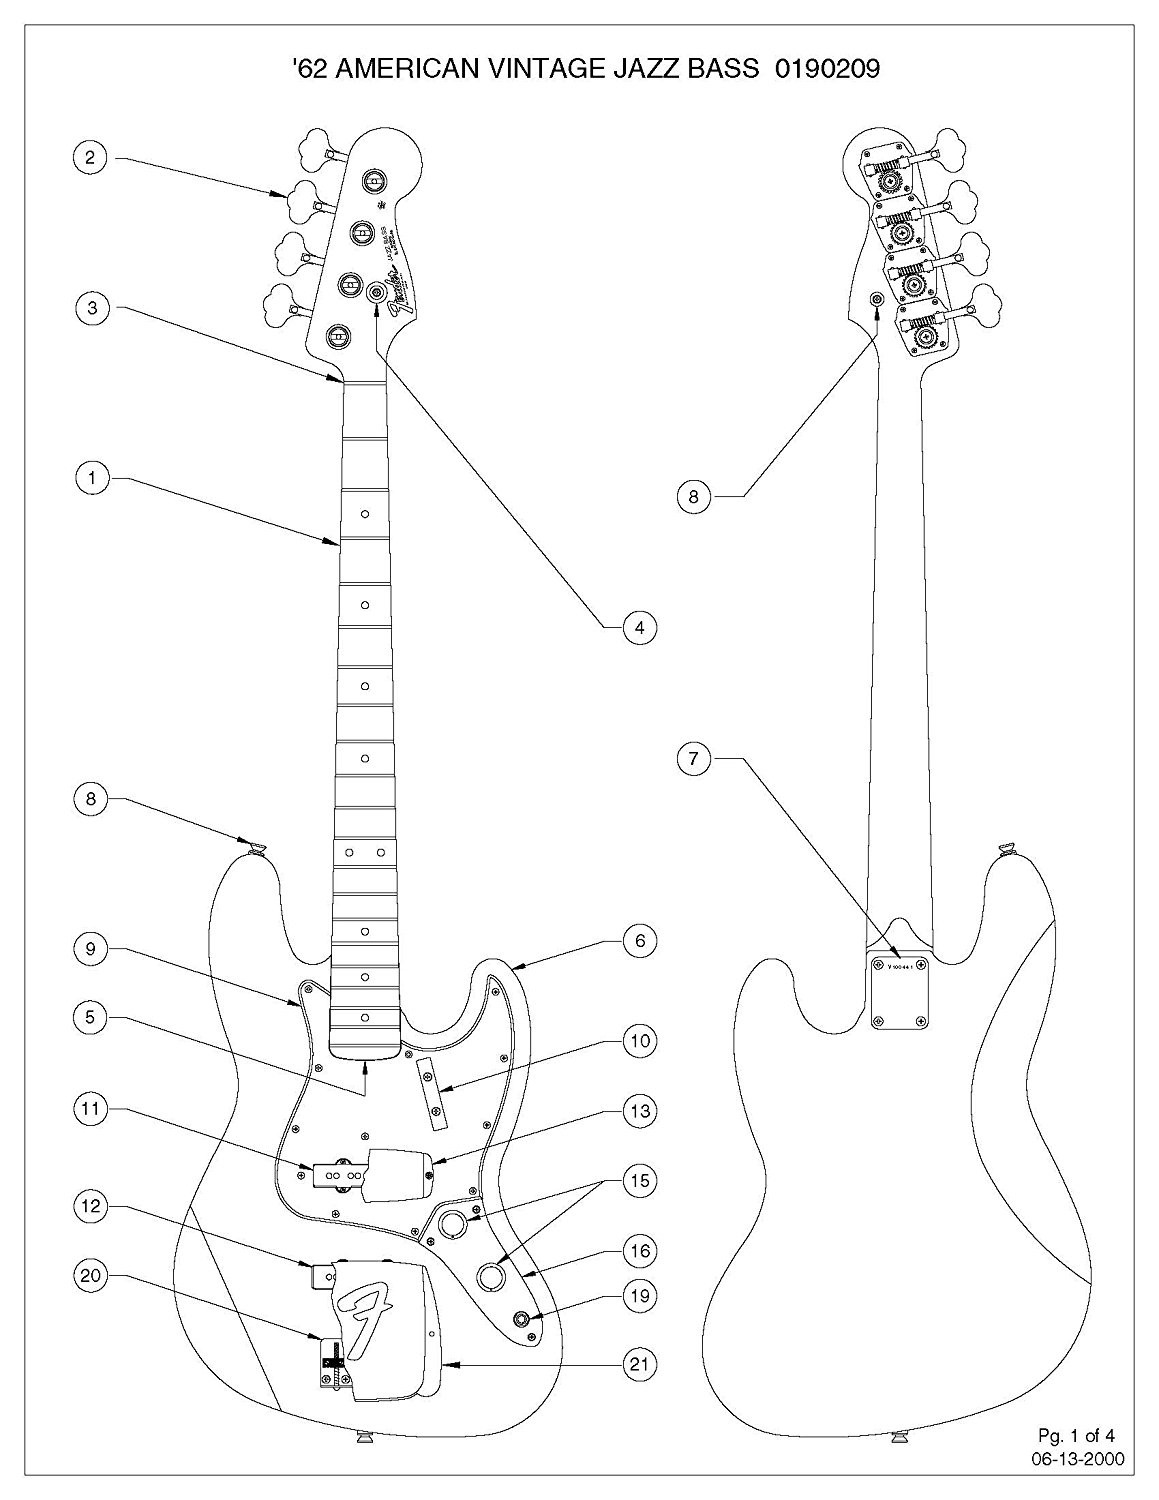 hight resolution of strat wiring diagram 62 wiring library62 jazz bass wiring diagram circuit wiring and diagram hub